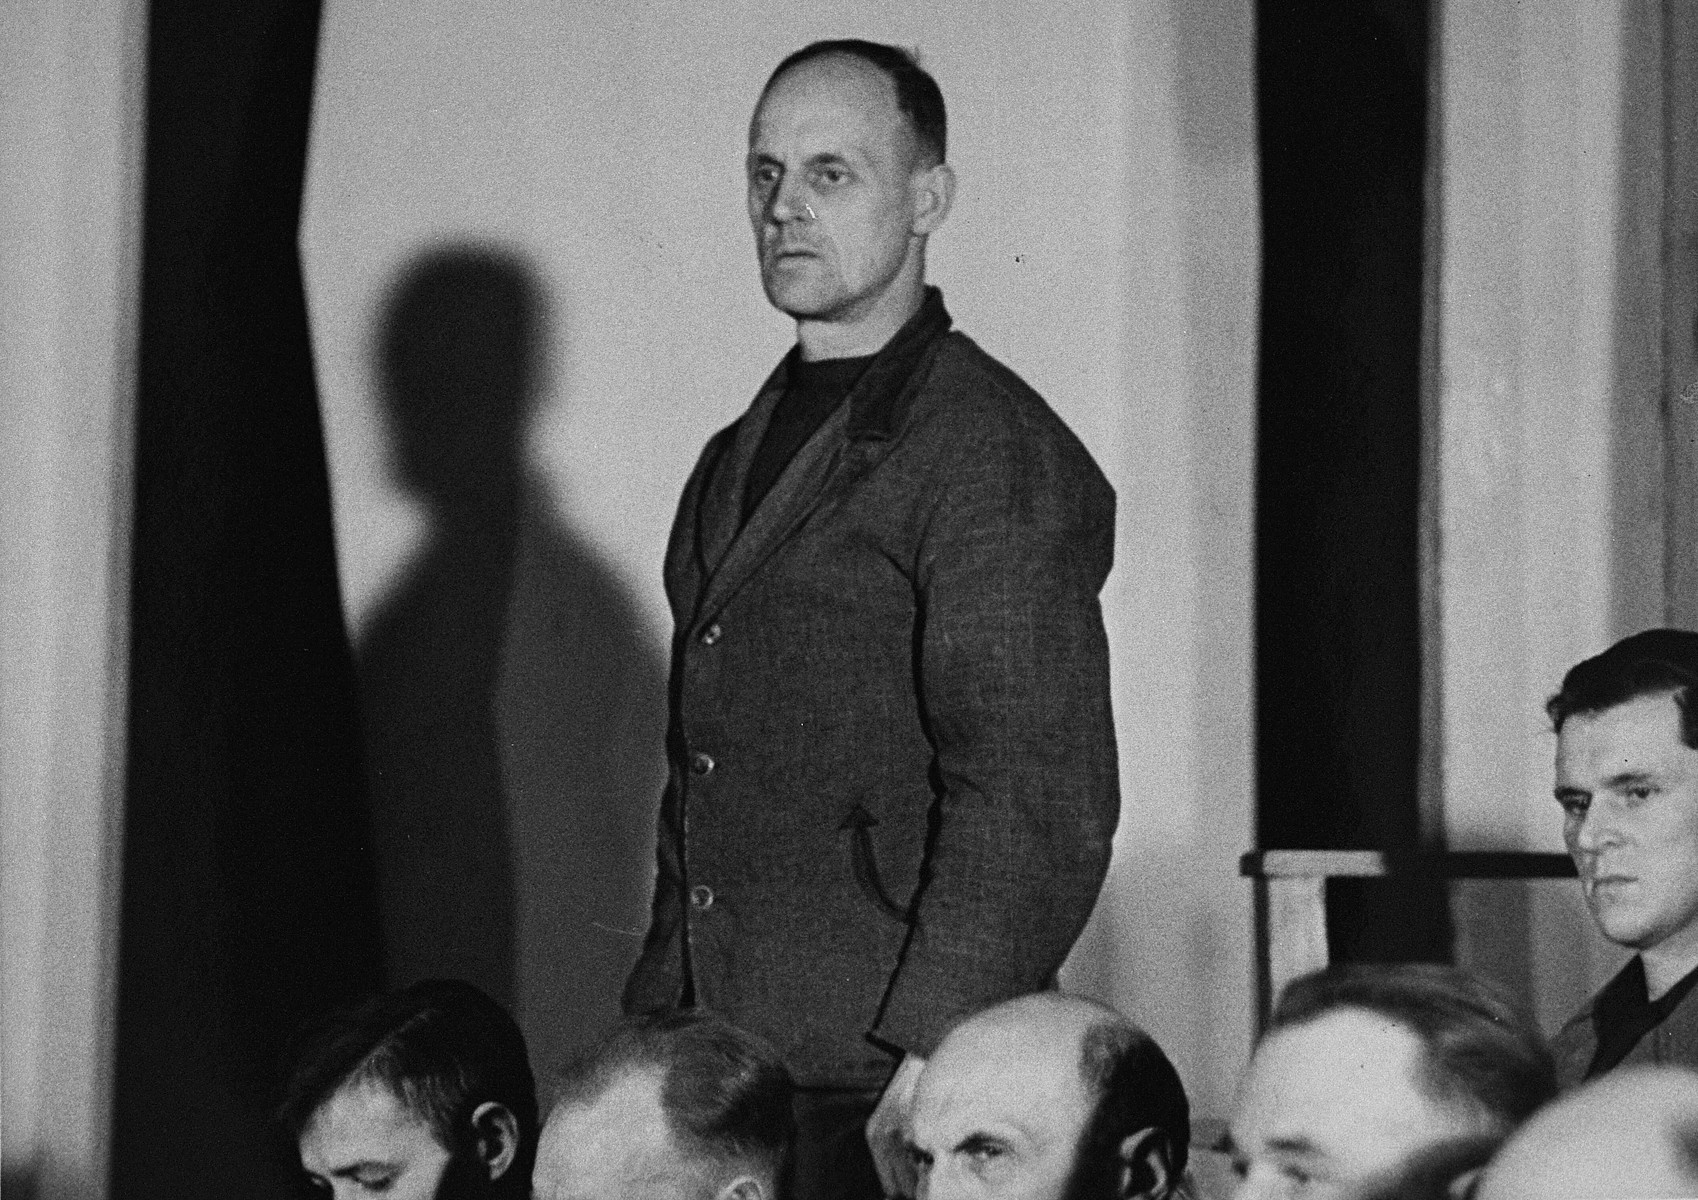 Hans Eisenhoefer, a defendant at the trial of 61 former camp personnel and prisoners from Mauthausen.